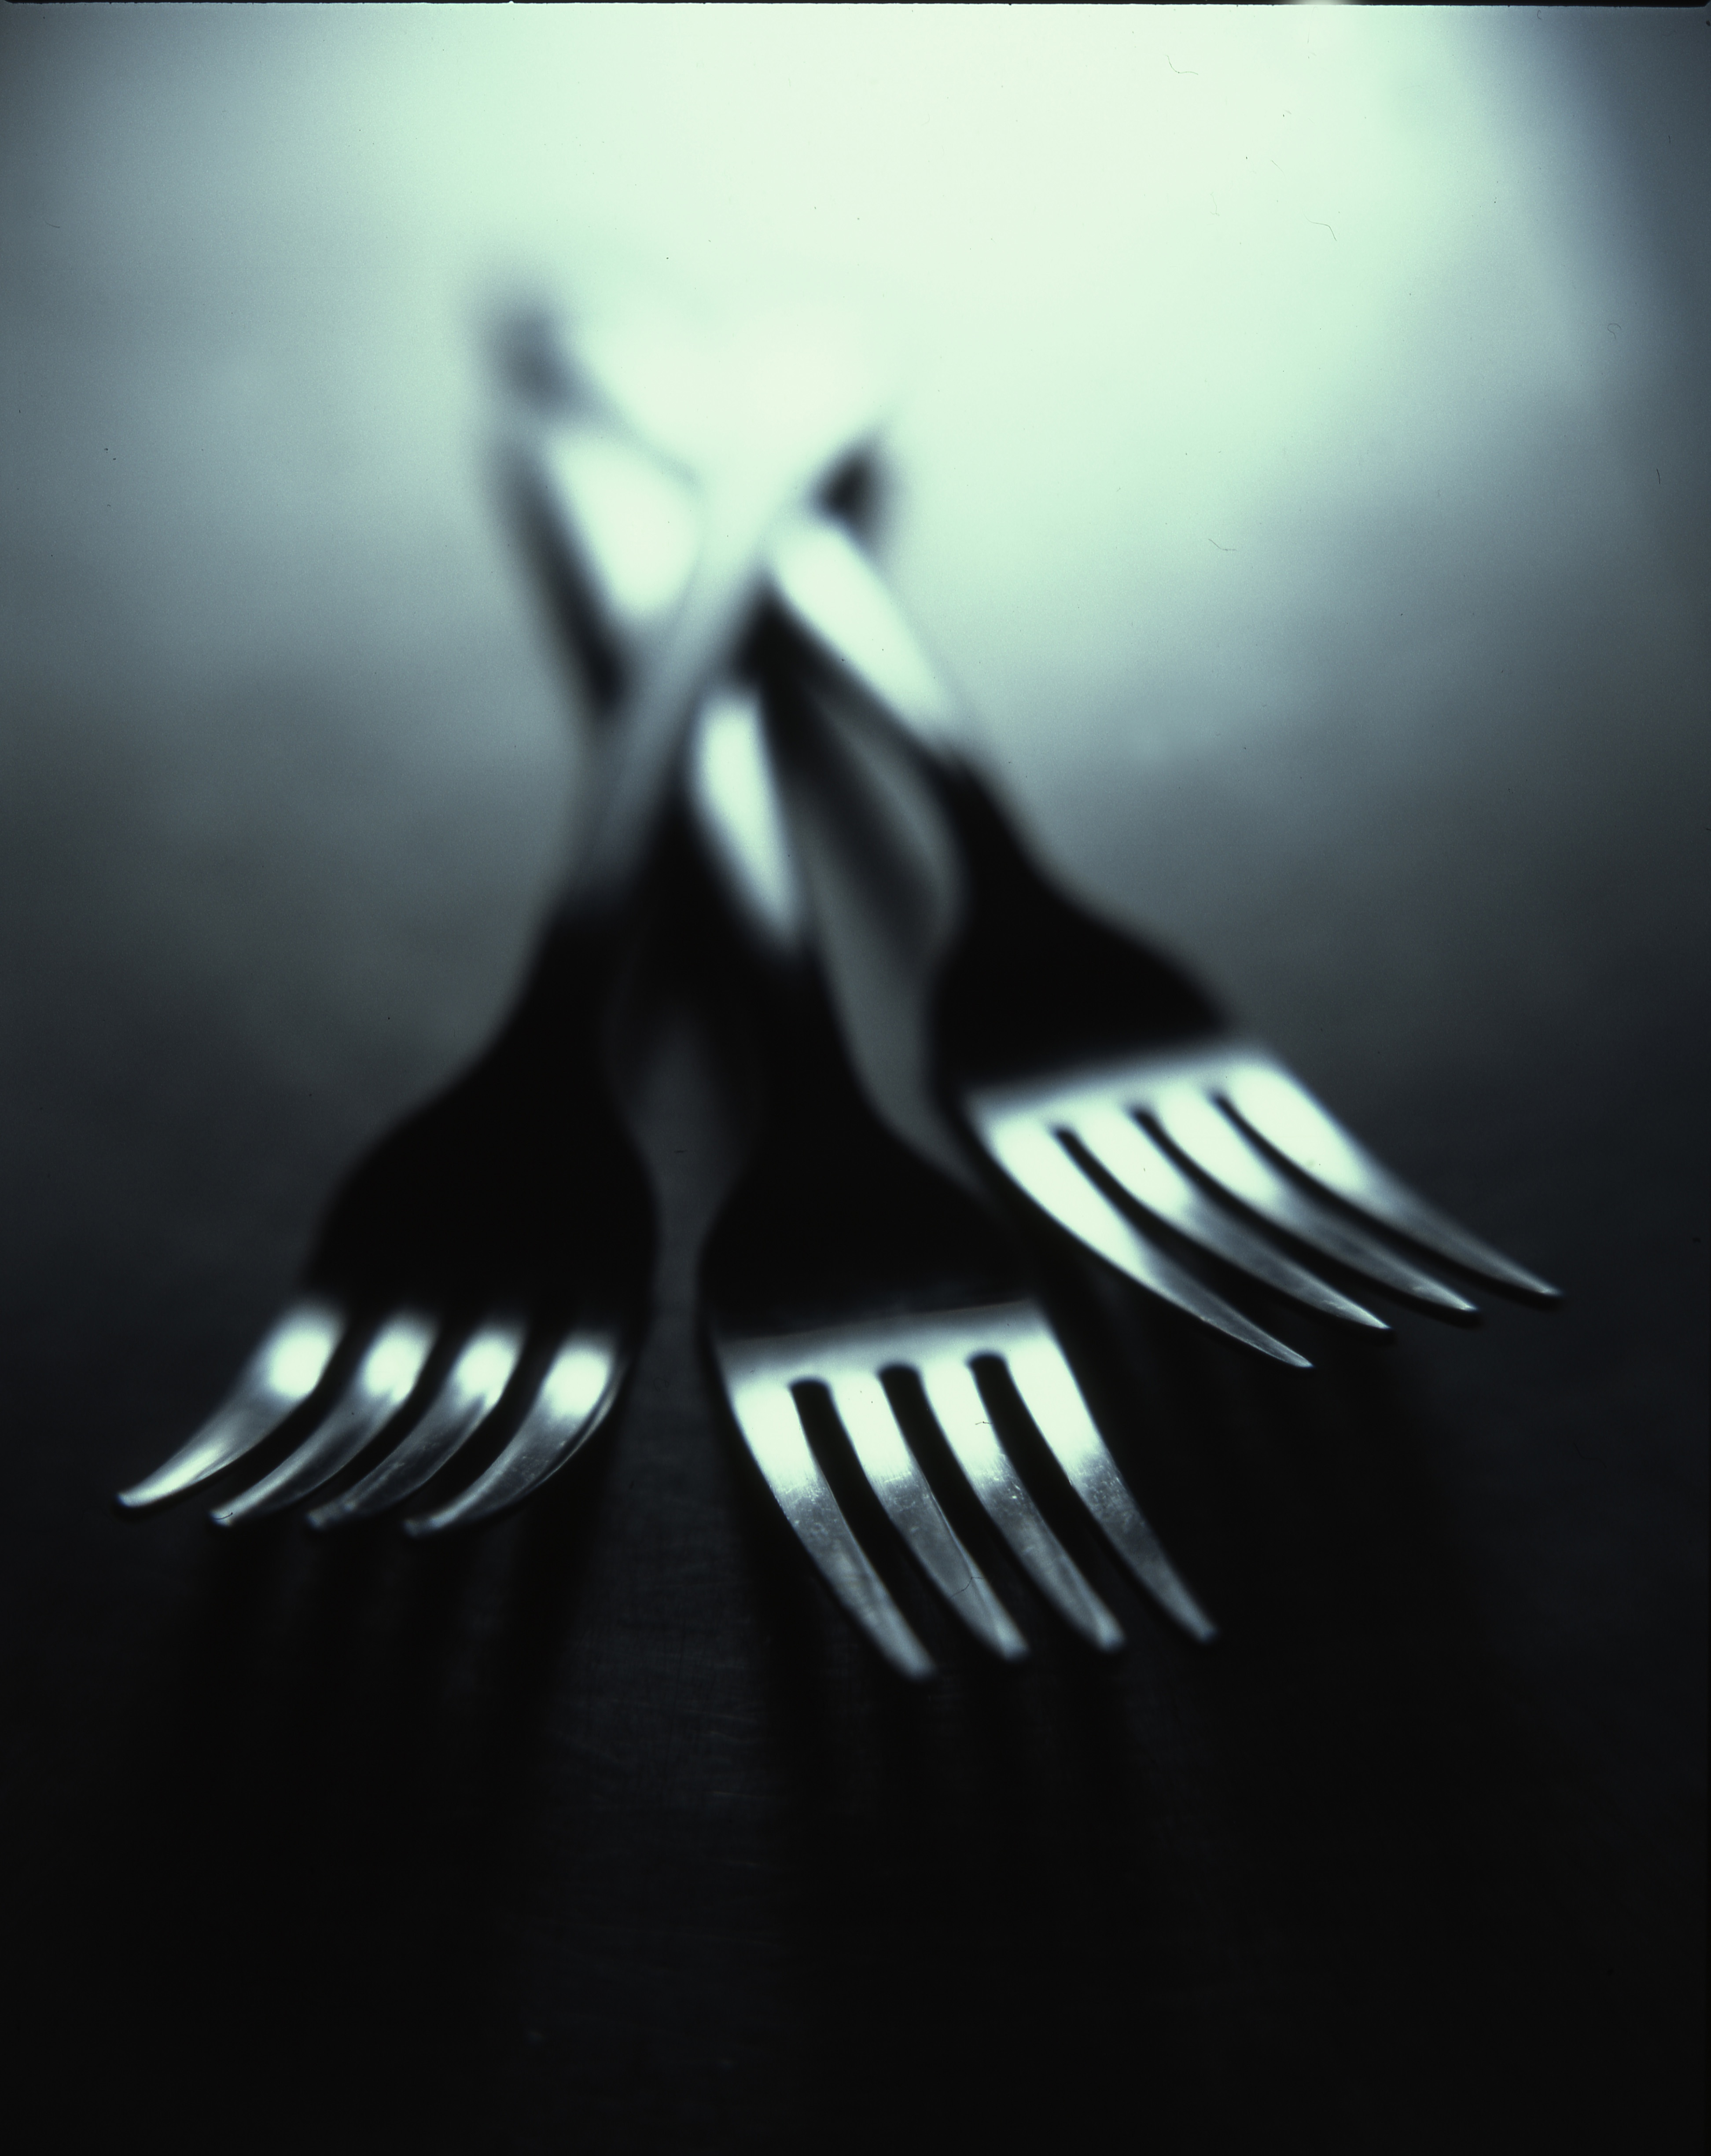 Fork, Eat, Food, Metal, Object, HQ Photo